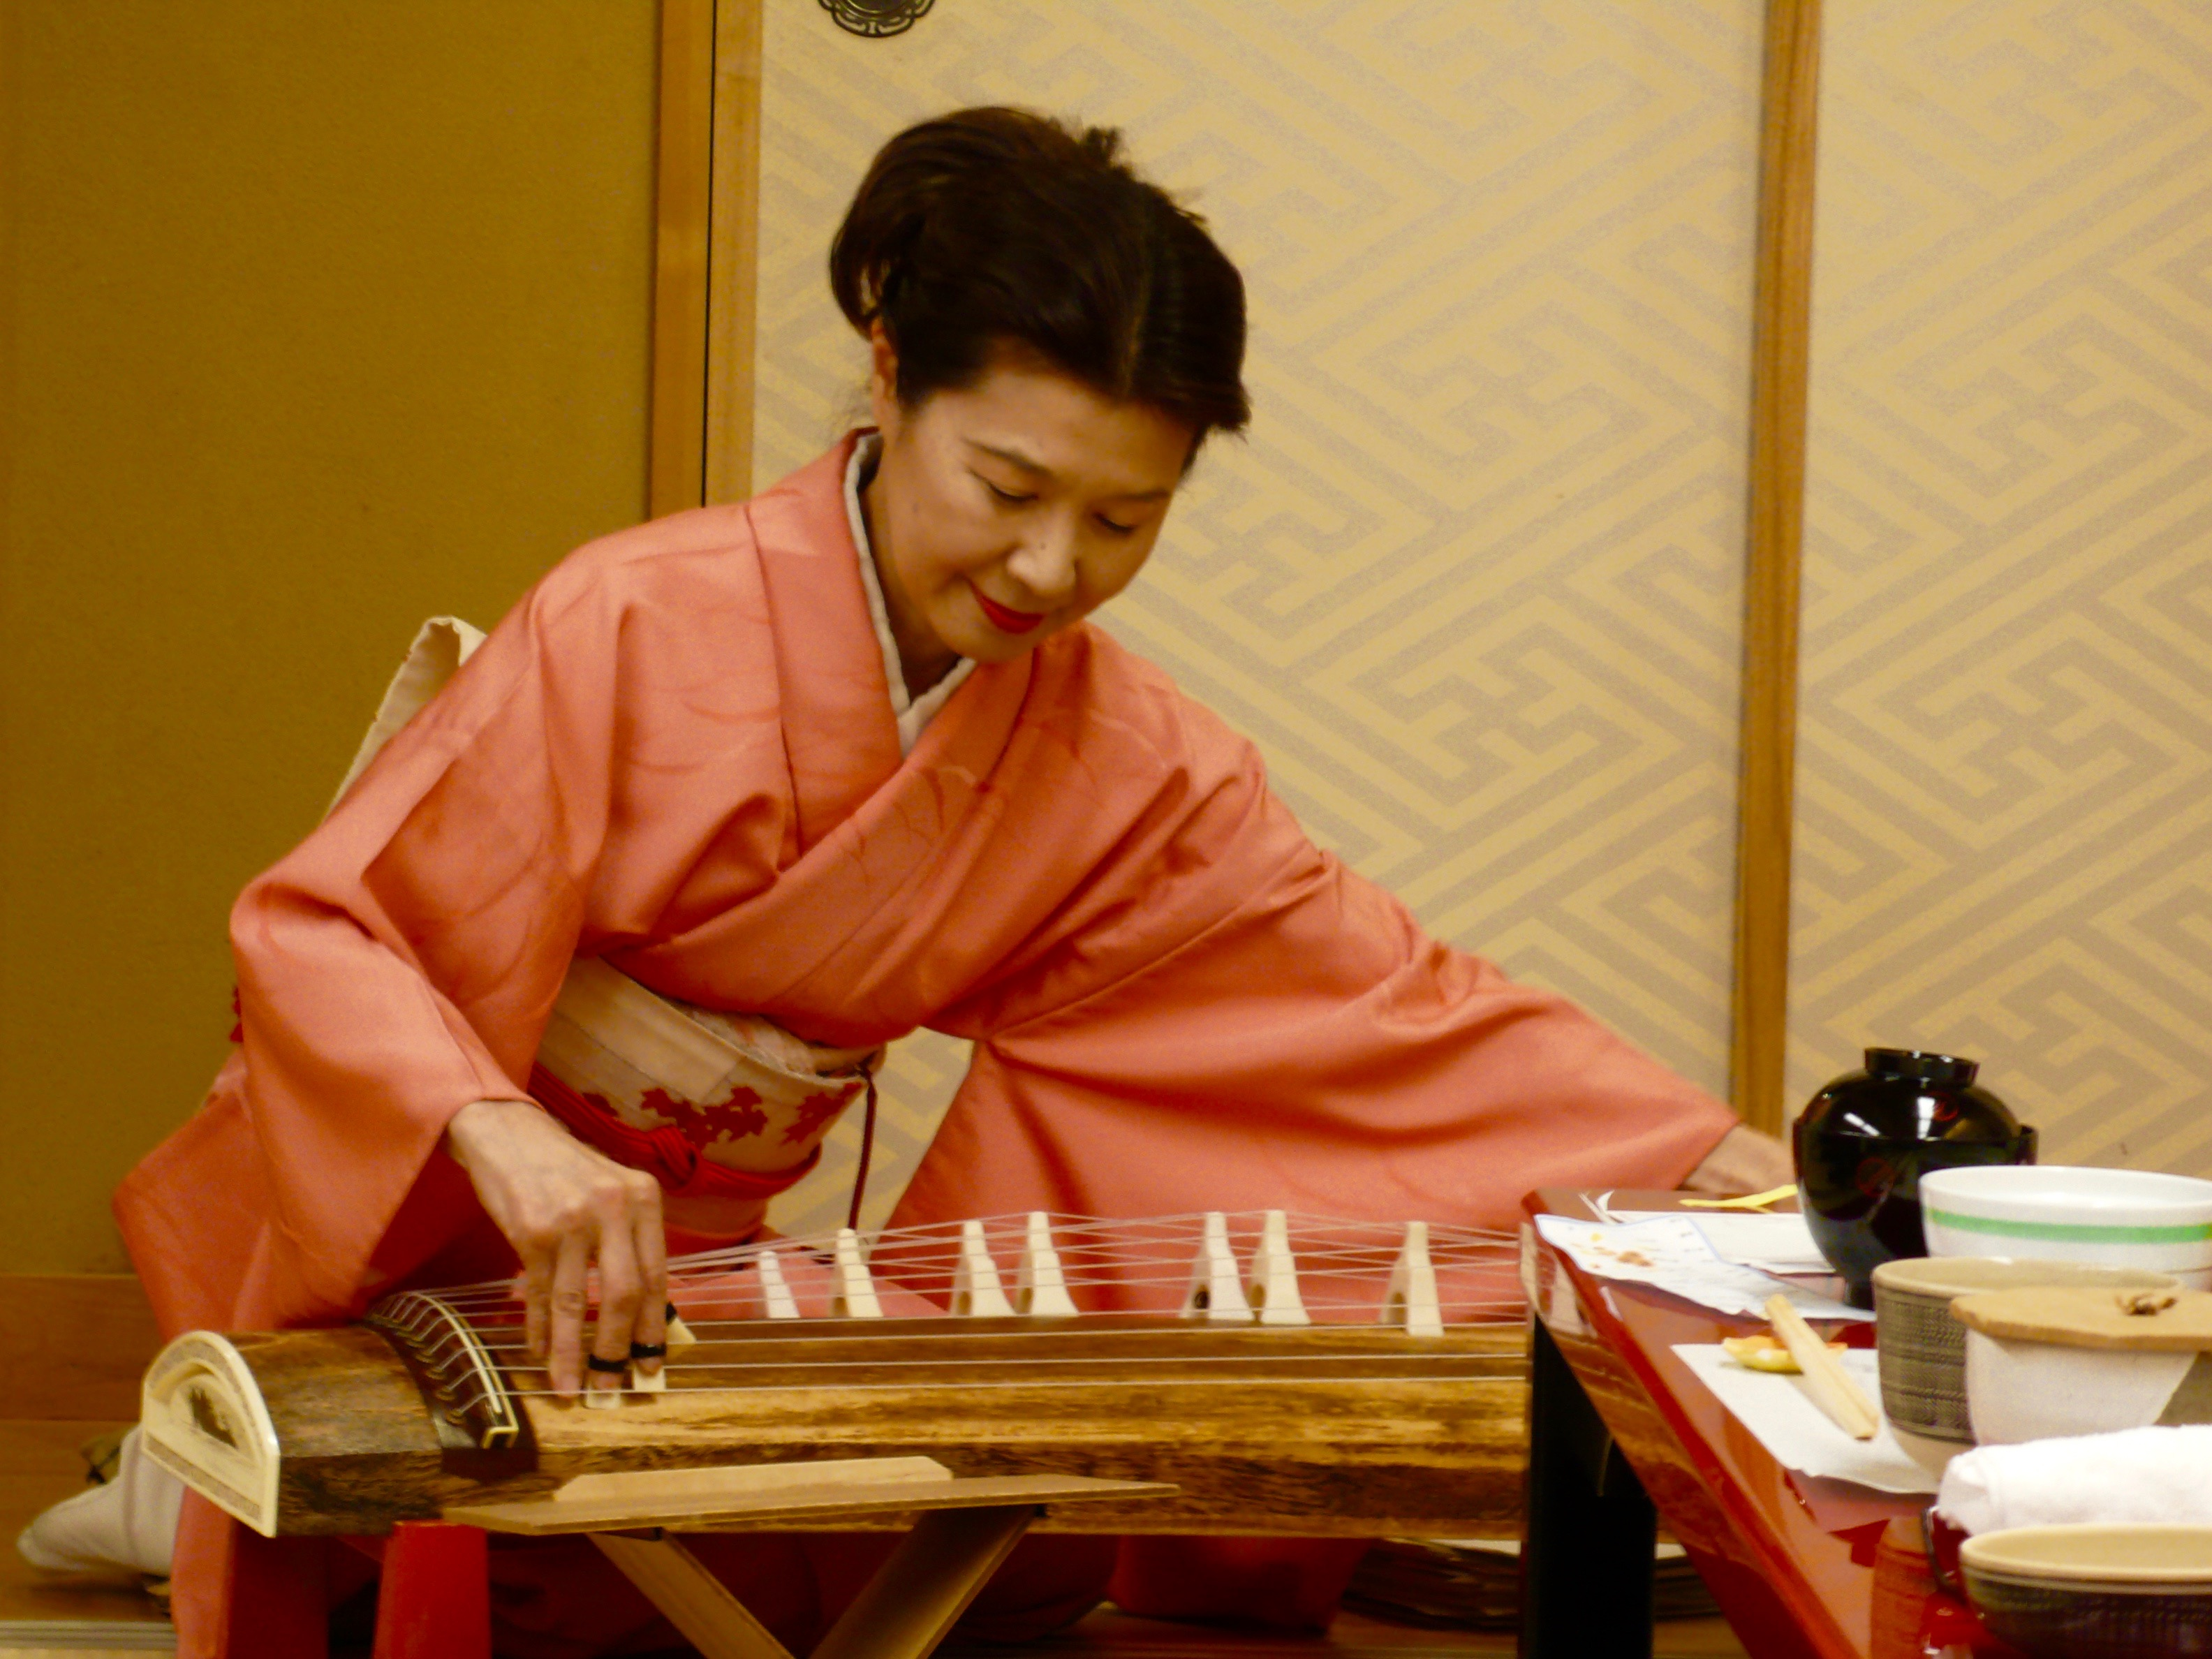 This musician played the koto for us in Kyoto.  The music is so ethereal.  She was so lovely, too, and so accomplished.  Her English was nearly perfect. Plus she did yoga three times a week!  She blushed when she told me about being a yoga practitioner!